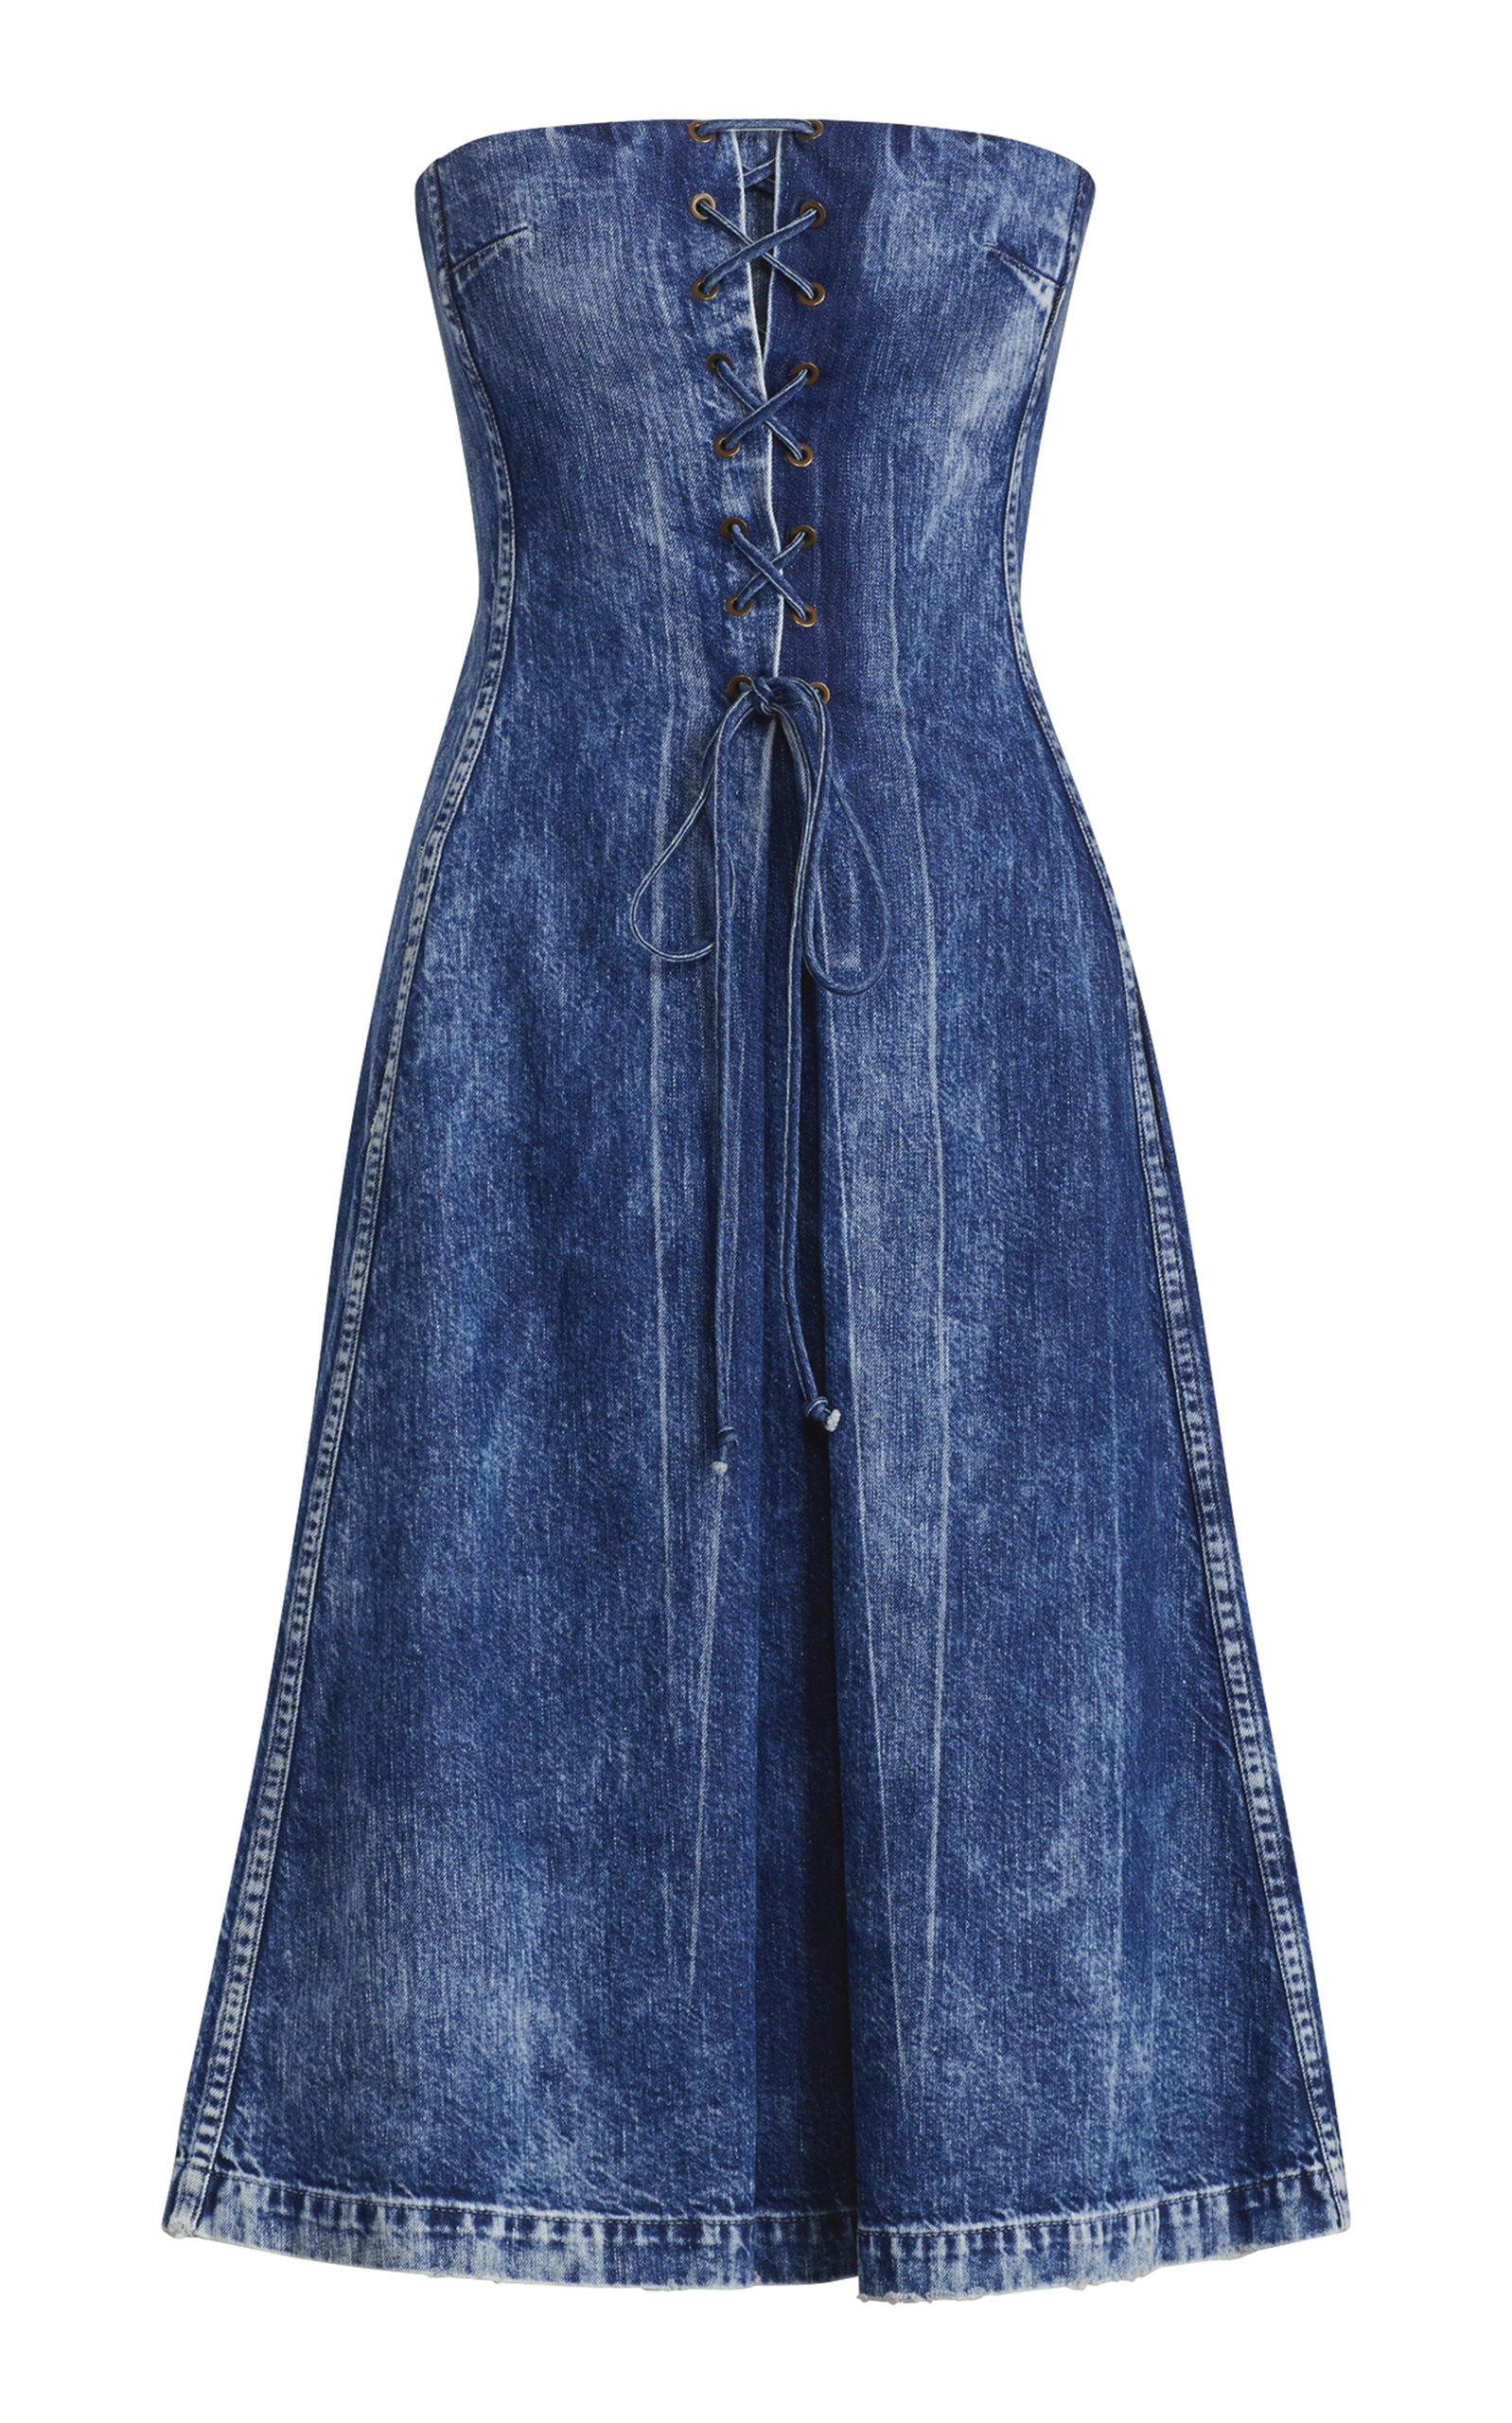 Esmee Denim Strapless Dress Ralph Lauren D1Ma9